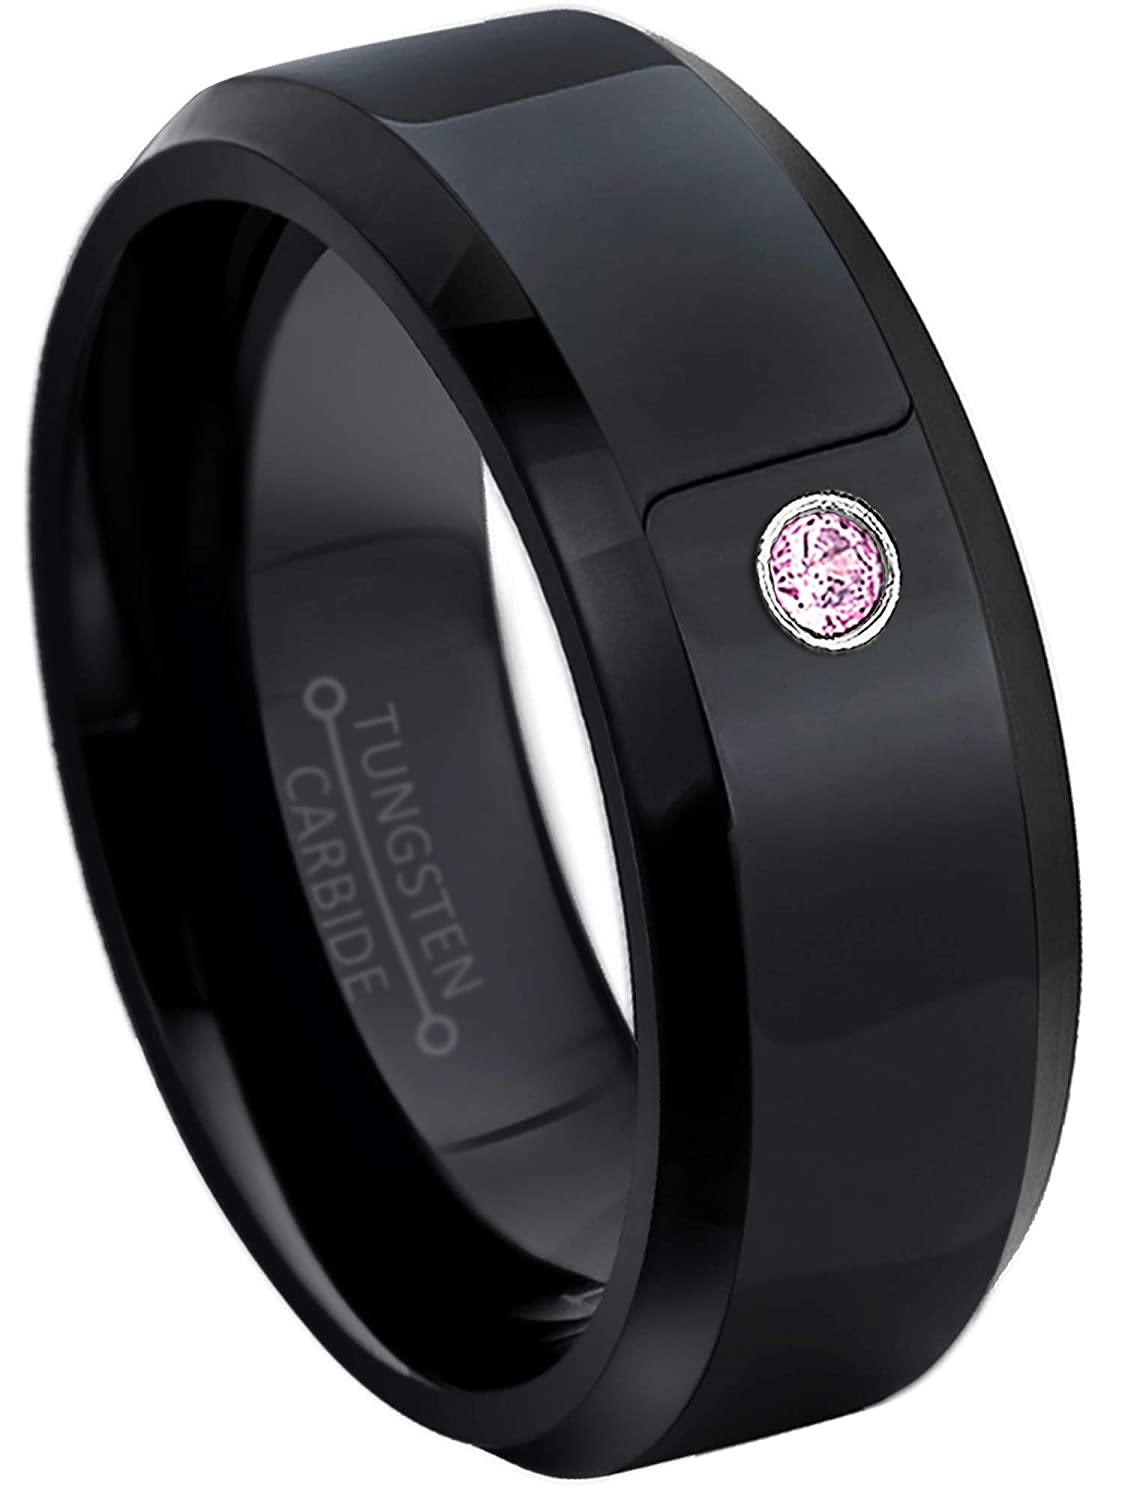 8MM Comfort Fit Polished Black Ion Stepped Edge Tungsten Carbide Wedding Band October Birthstone Ring Jewelry Avalanche 0.07ct Pink Tourmaline Tungsten Ring